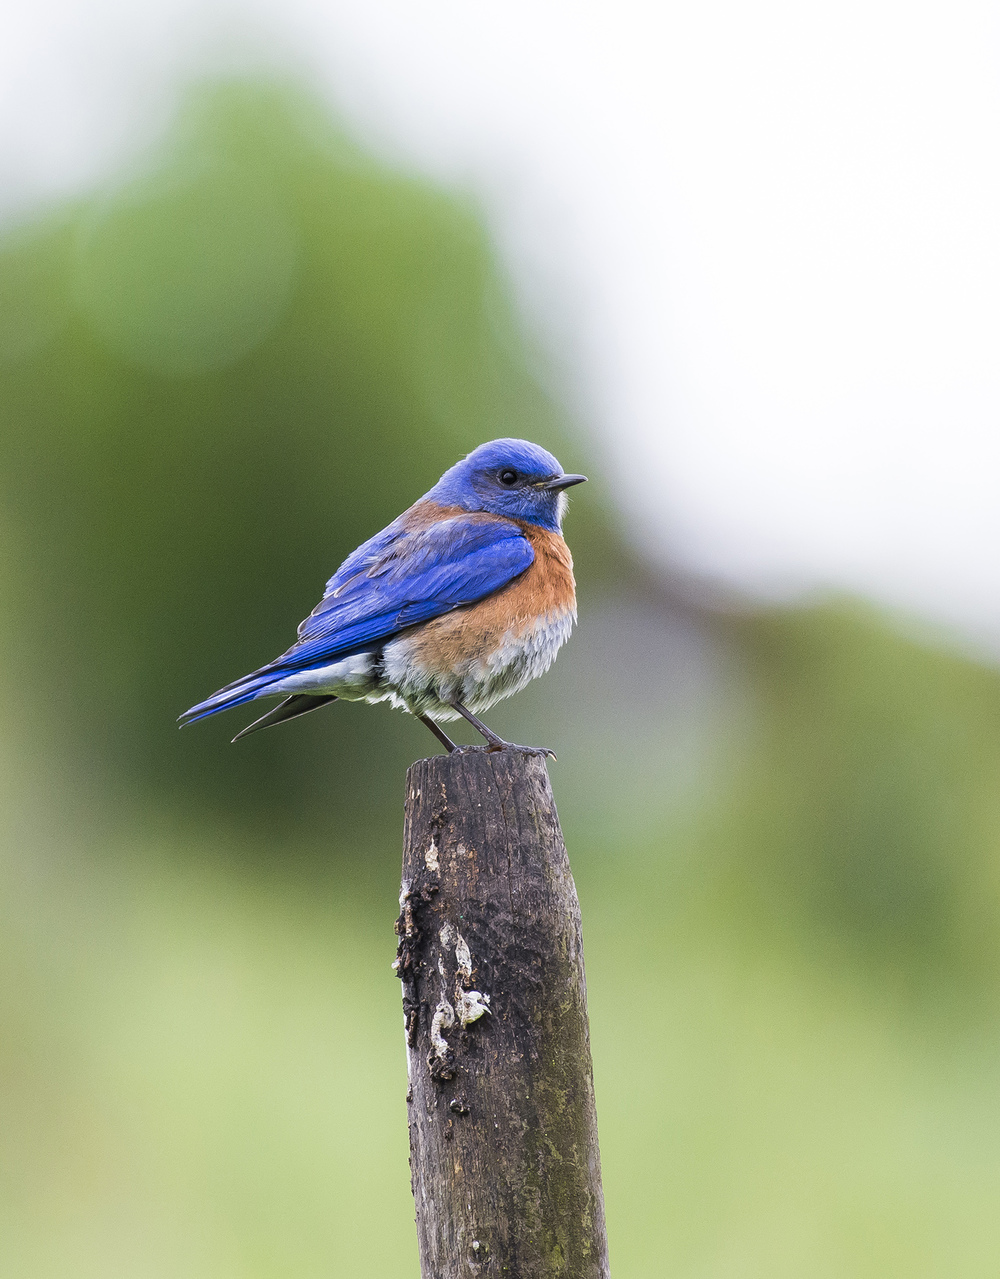 A western bluebird ( Sialia mexicana ) perched on a stake in a San Ramon neighborhood